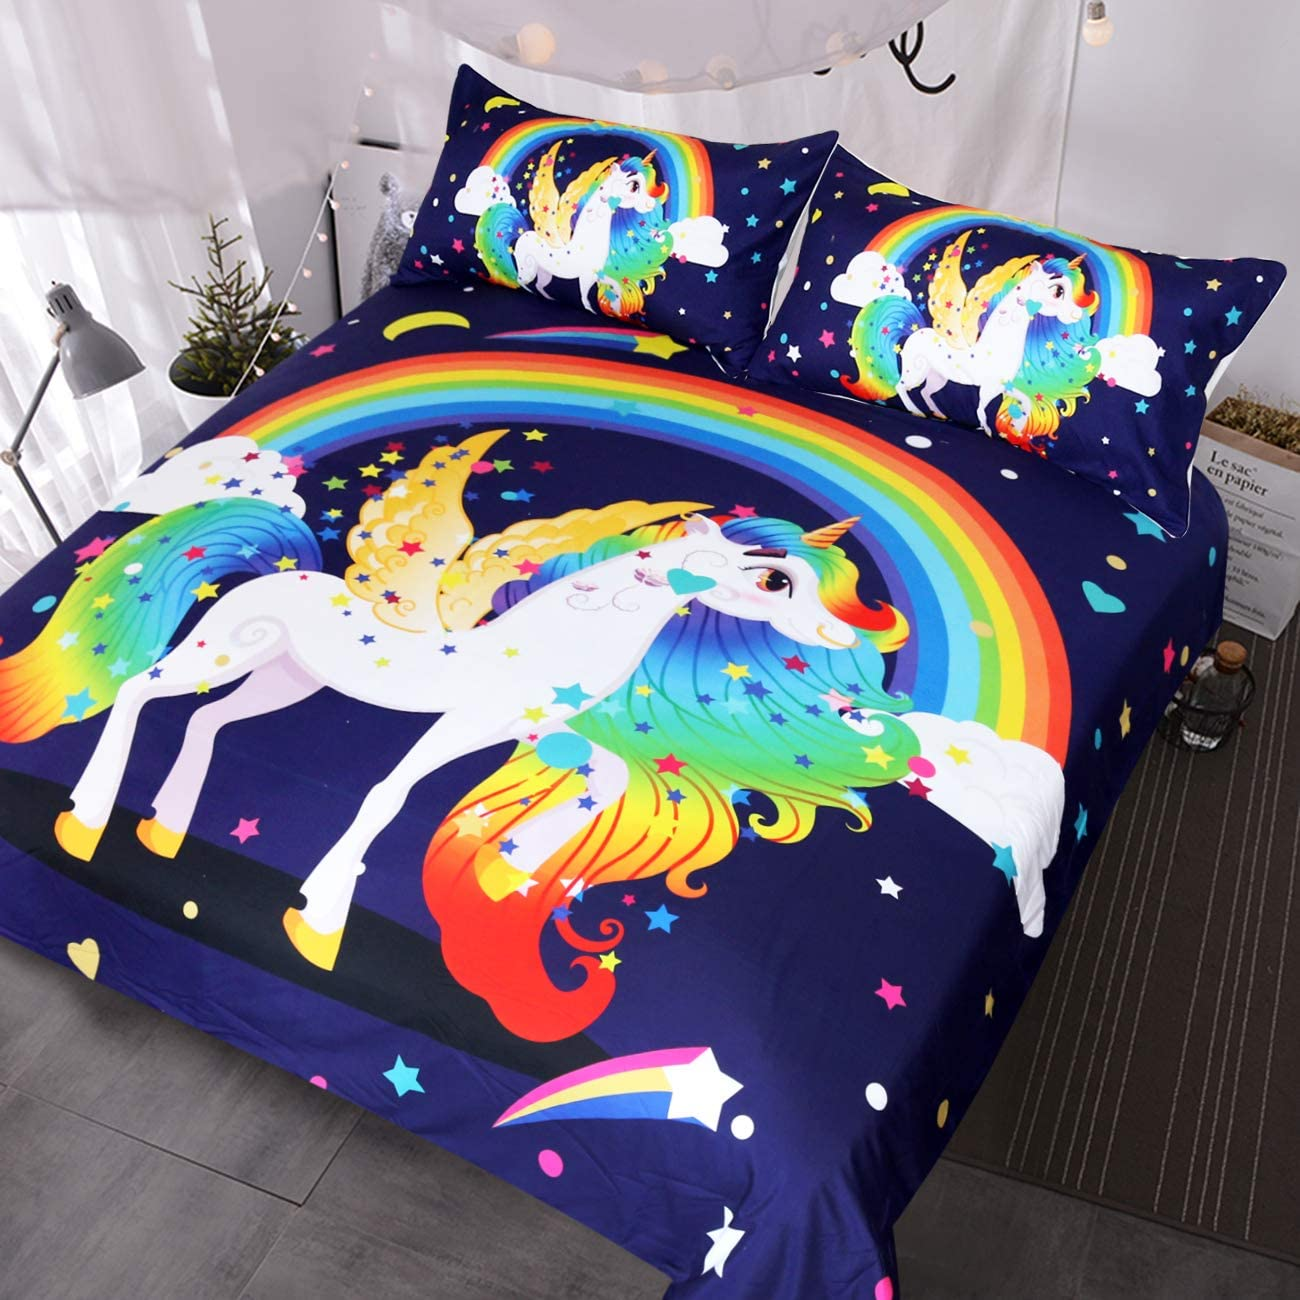 BlessLiving Blue Unicorn Bedding for Teens Girls Boys Winged Unicorn Rainbow and Stars Fantasy Duvet Cover 3 Pieces Kids Magical Bed Set (Twin)